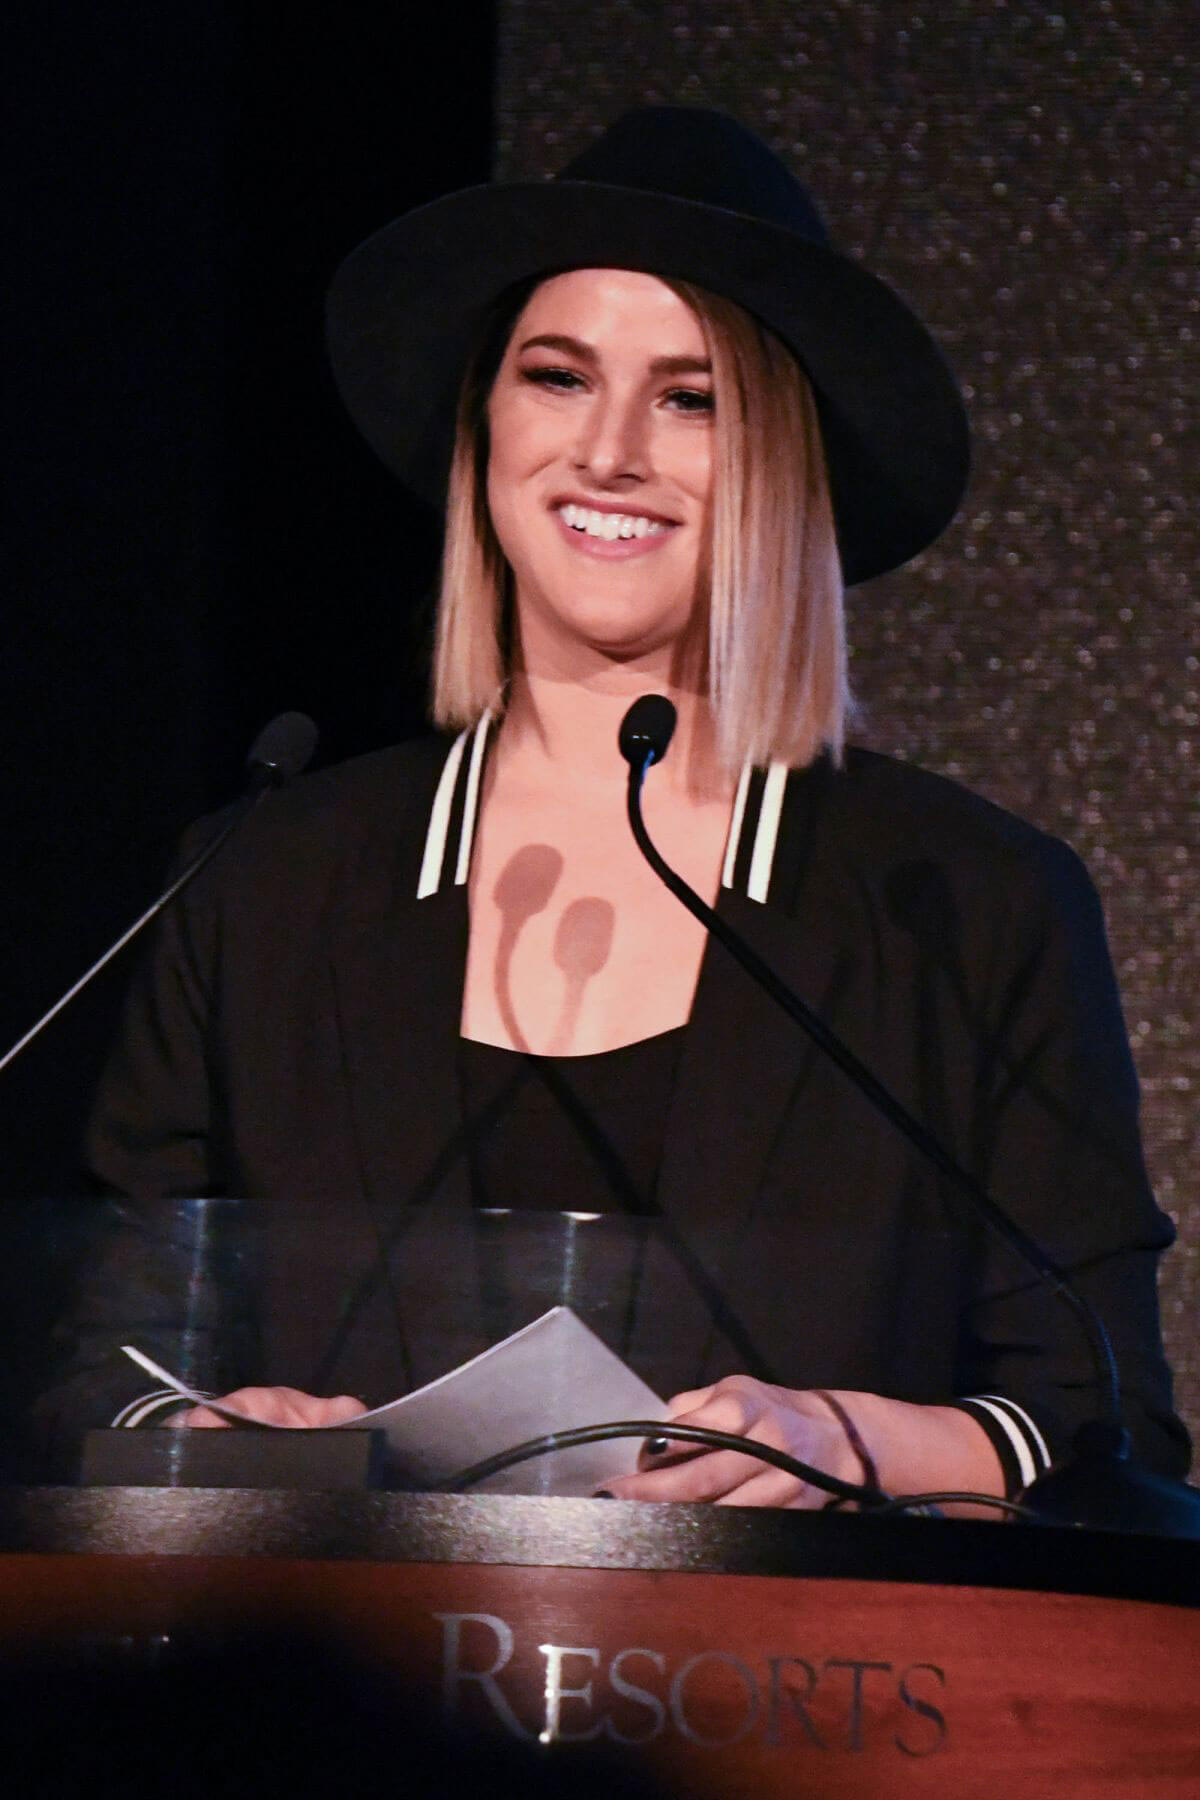 Cassadee Pope Stills at CRS 2018 Artist Humanitarian Award and Tom Rivers Award in Nashville 2018/02/05